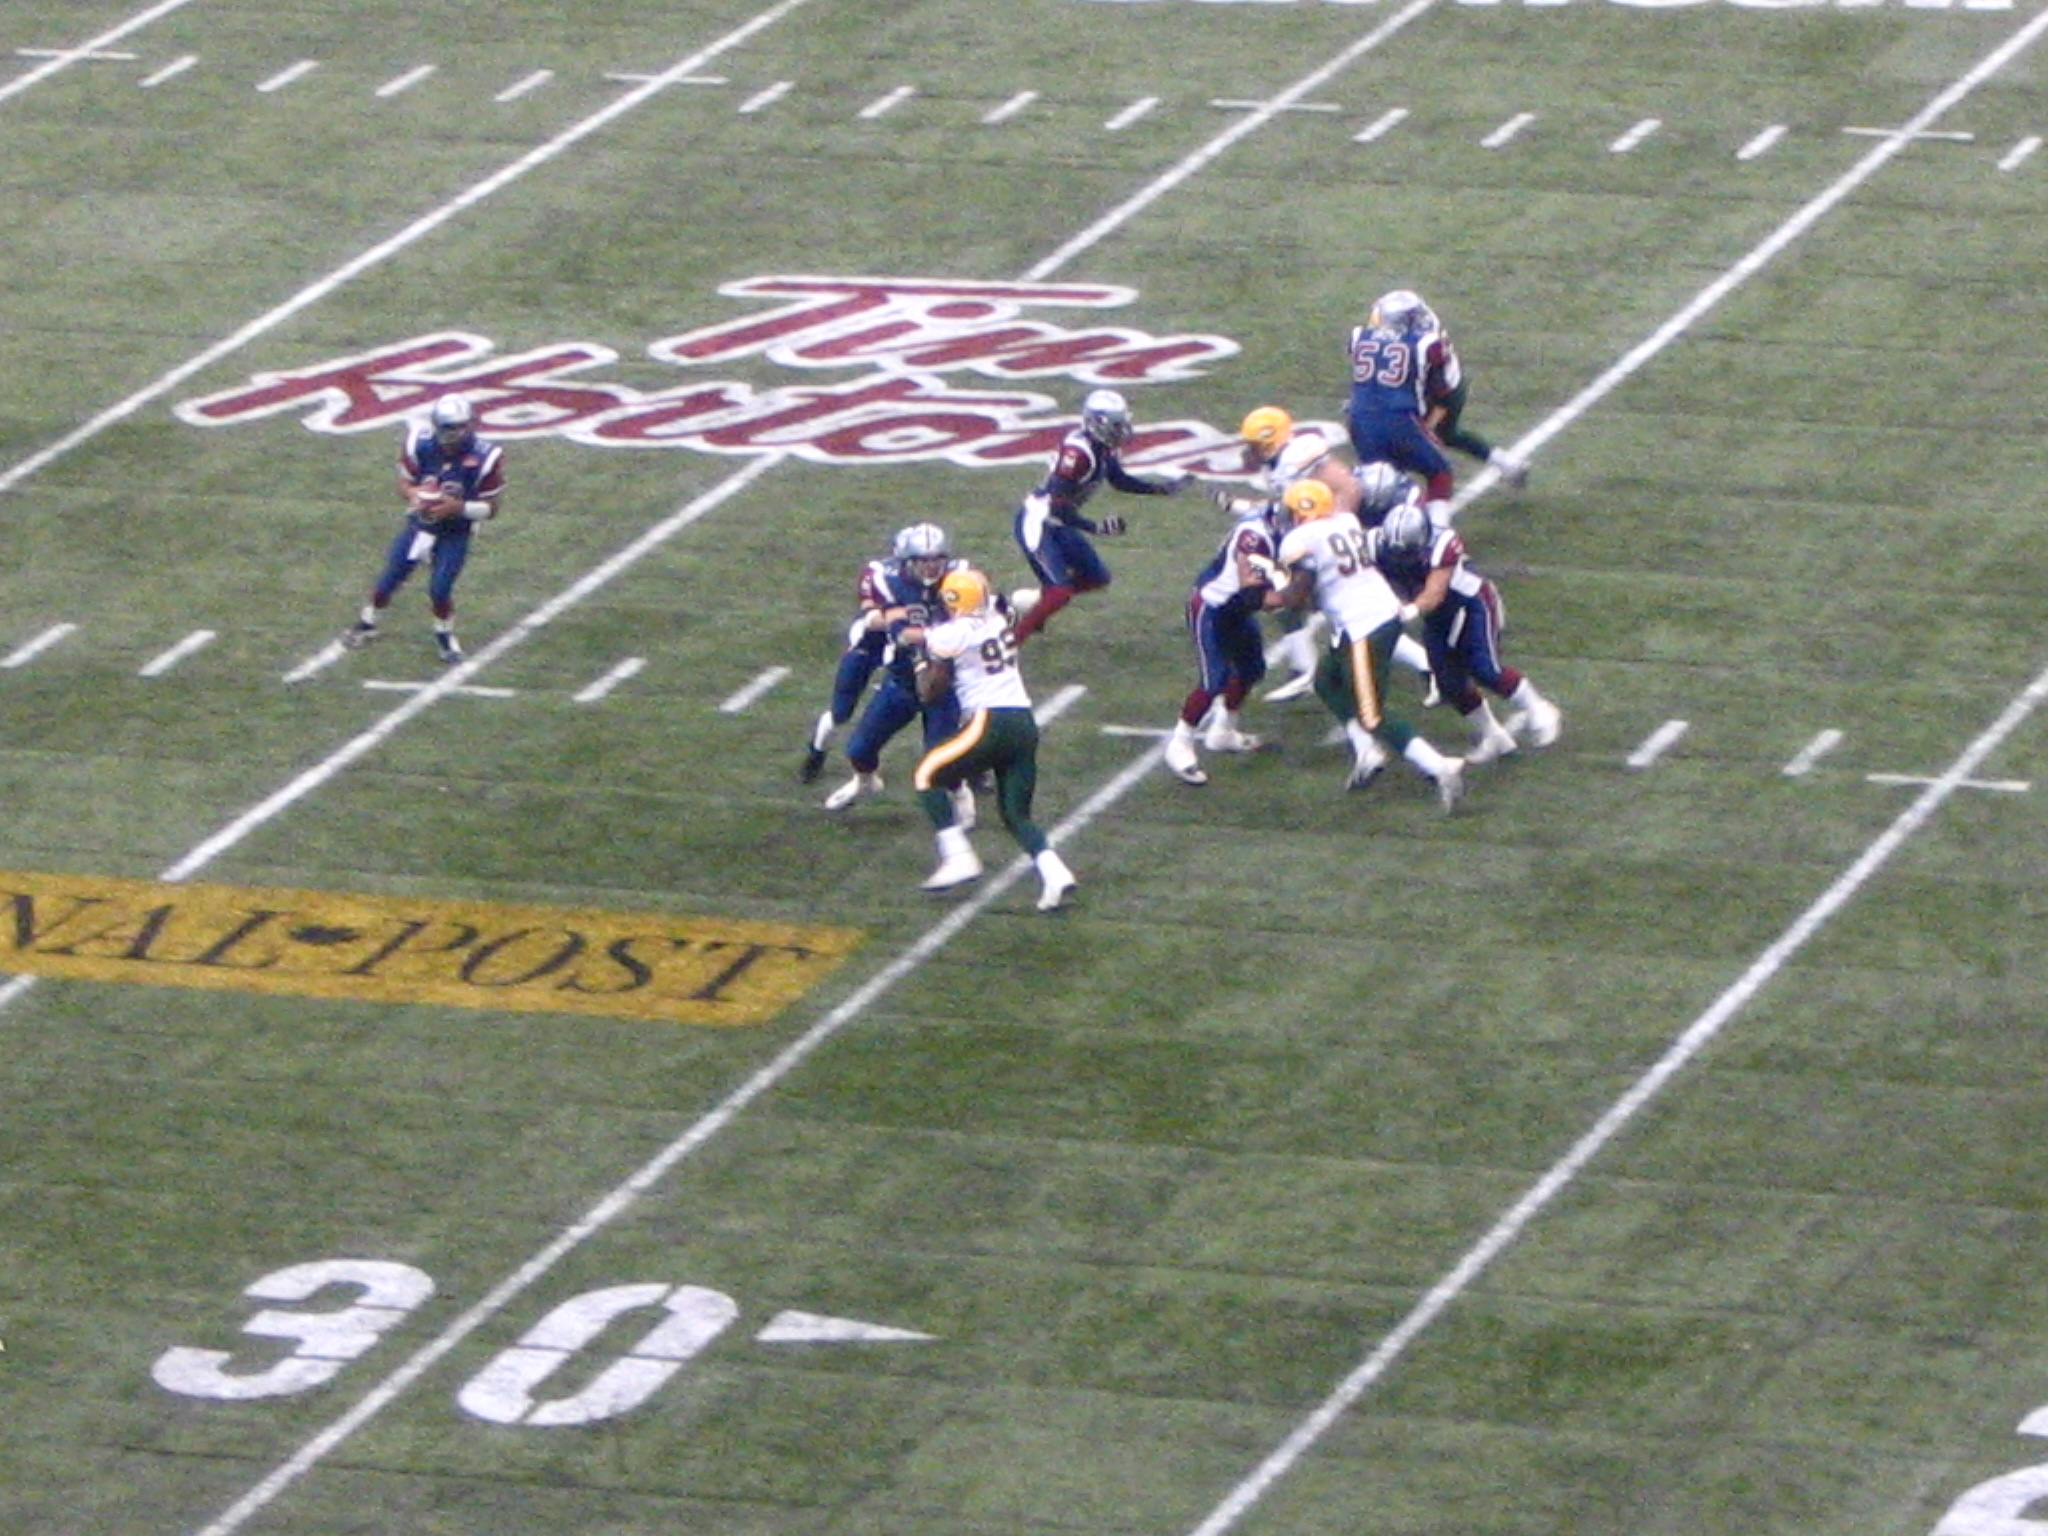 The 2005 Grey Cup, where Ray and the Eskimos defeated Calvillo and the Alouettes.